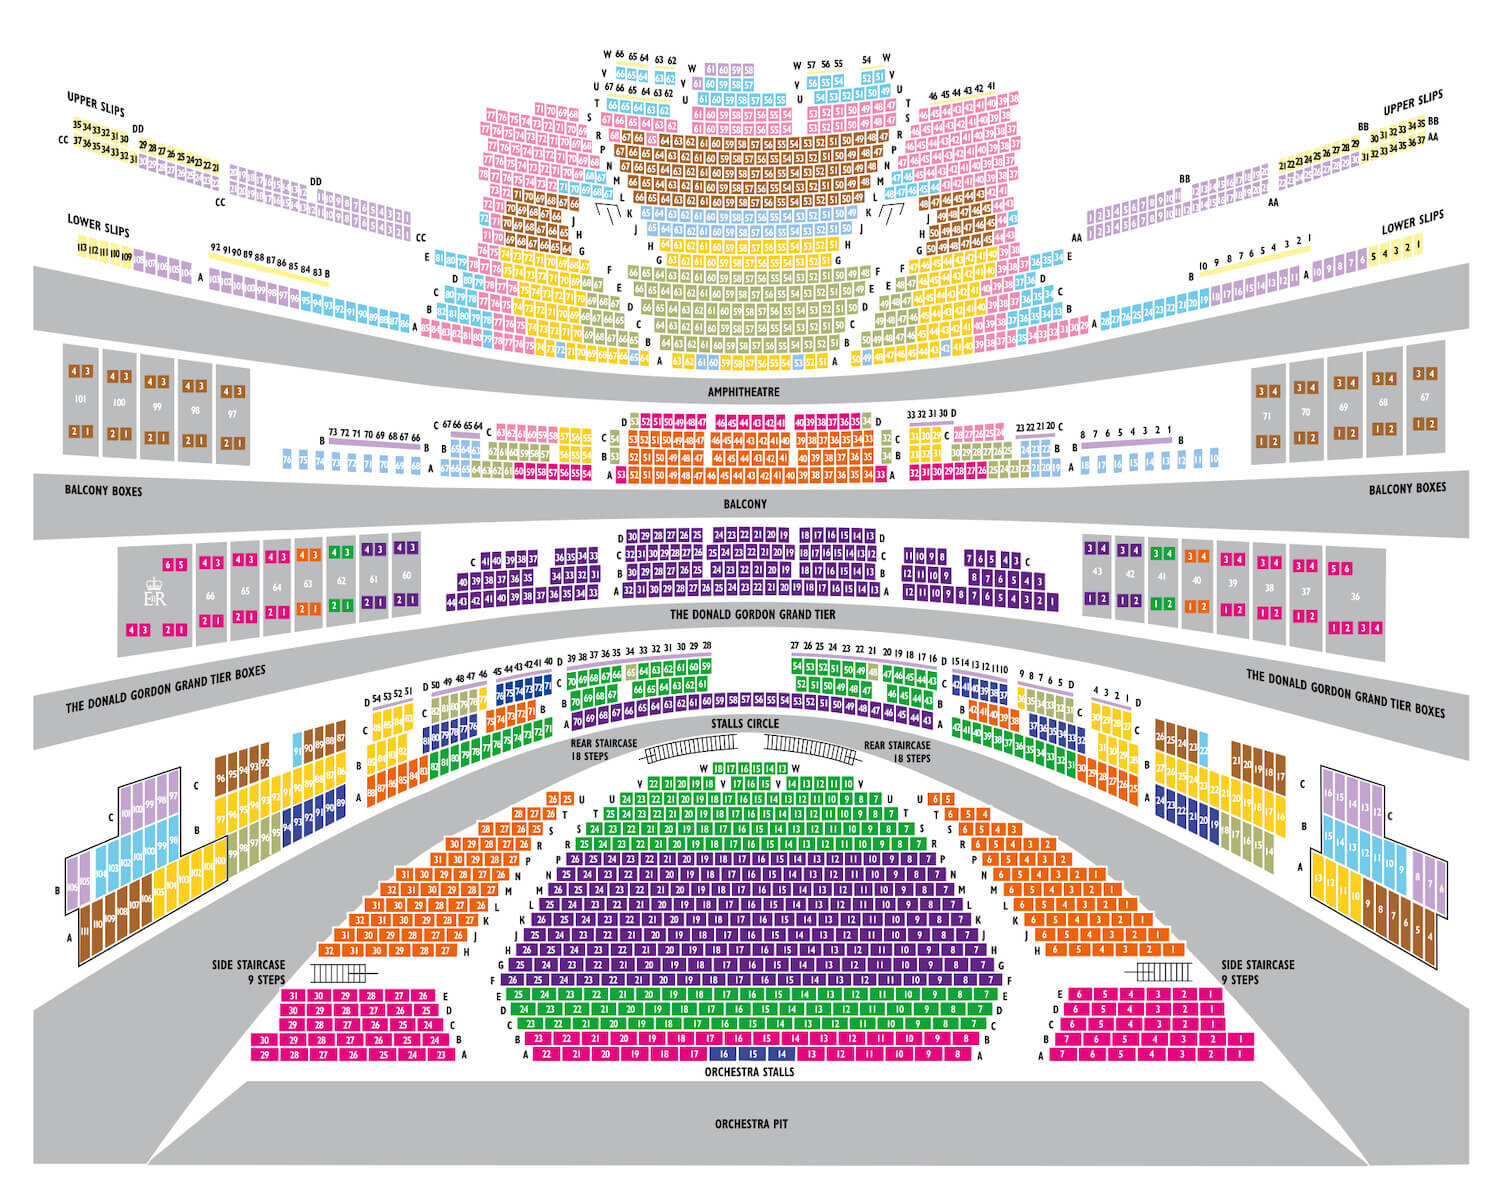 Royal Opera House - Seating Plan and Ticket Types